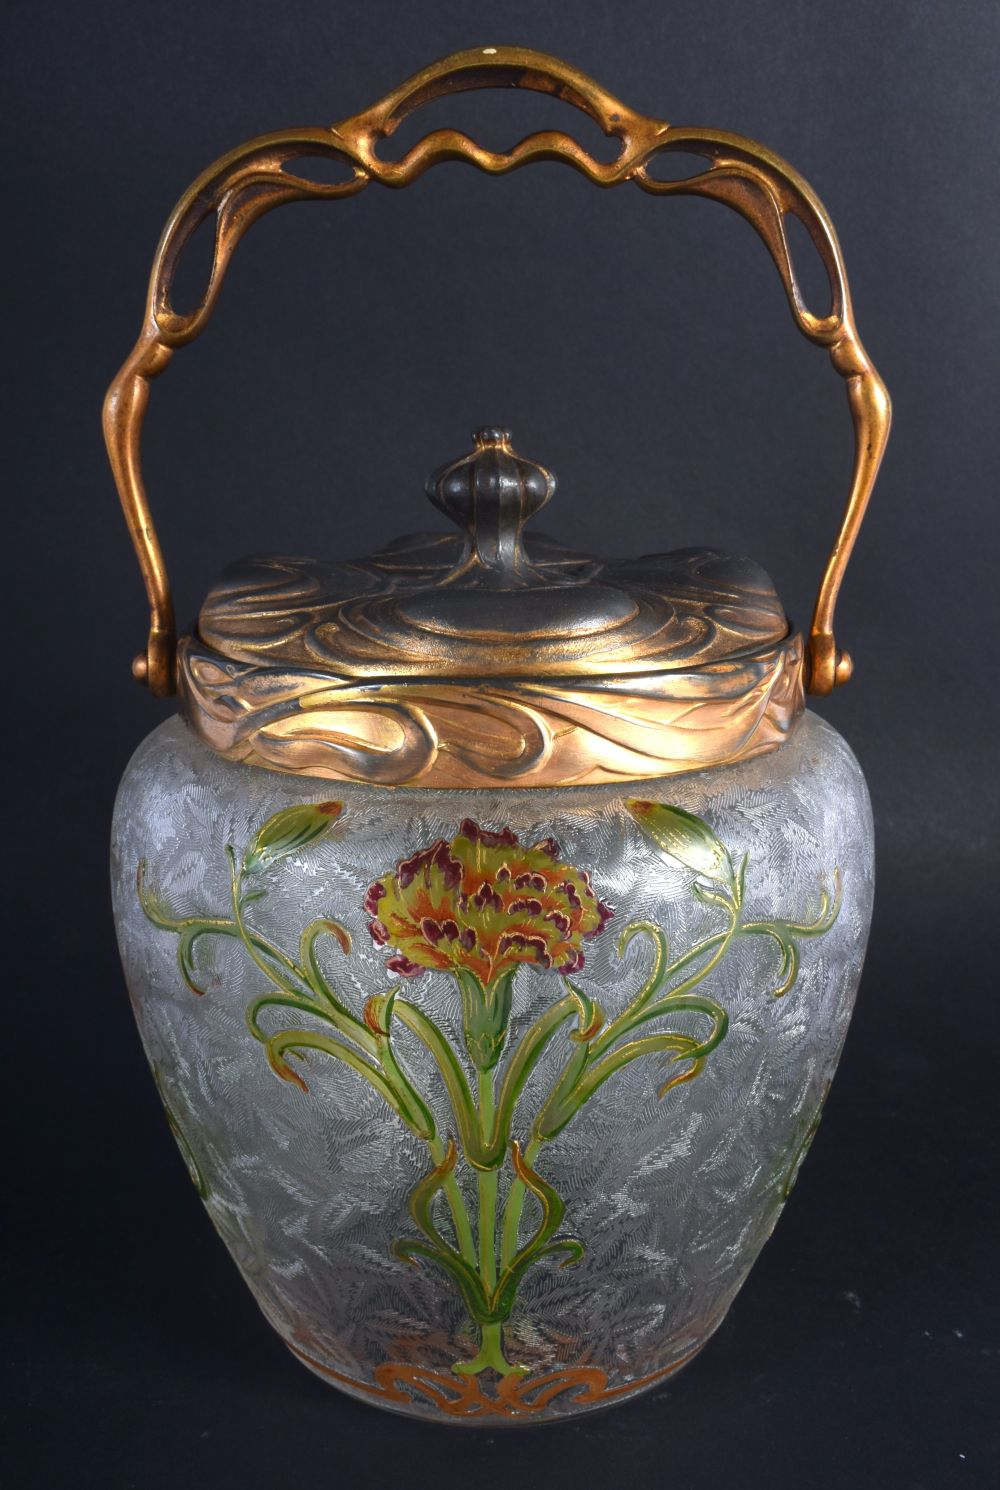 A FINE FRENCH ART NOUVEAU ENAMELLED FROSTED GLASS BISCUIT BARREL possibly by Legras, painted with st